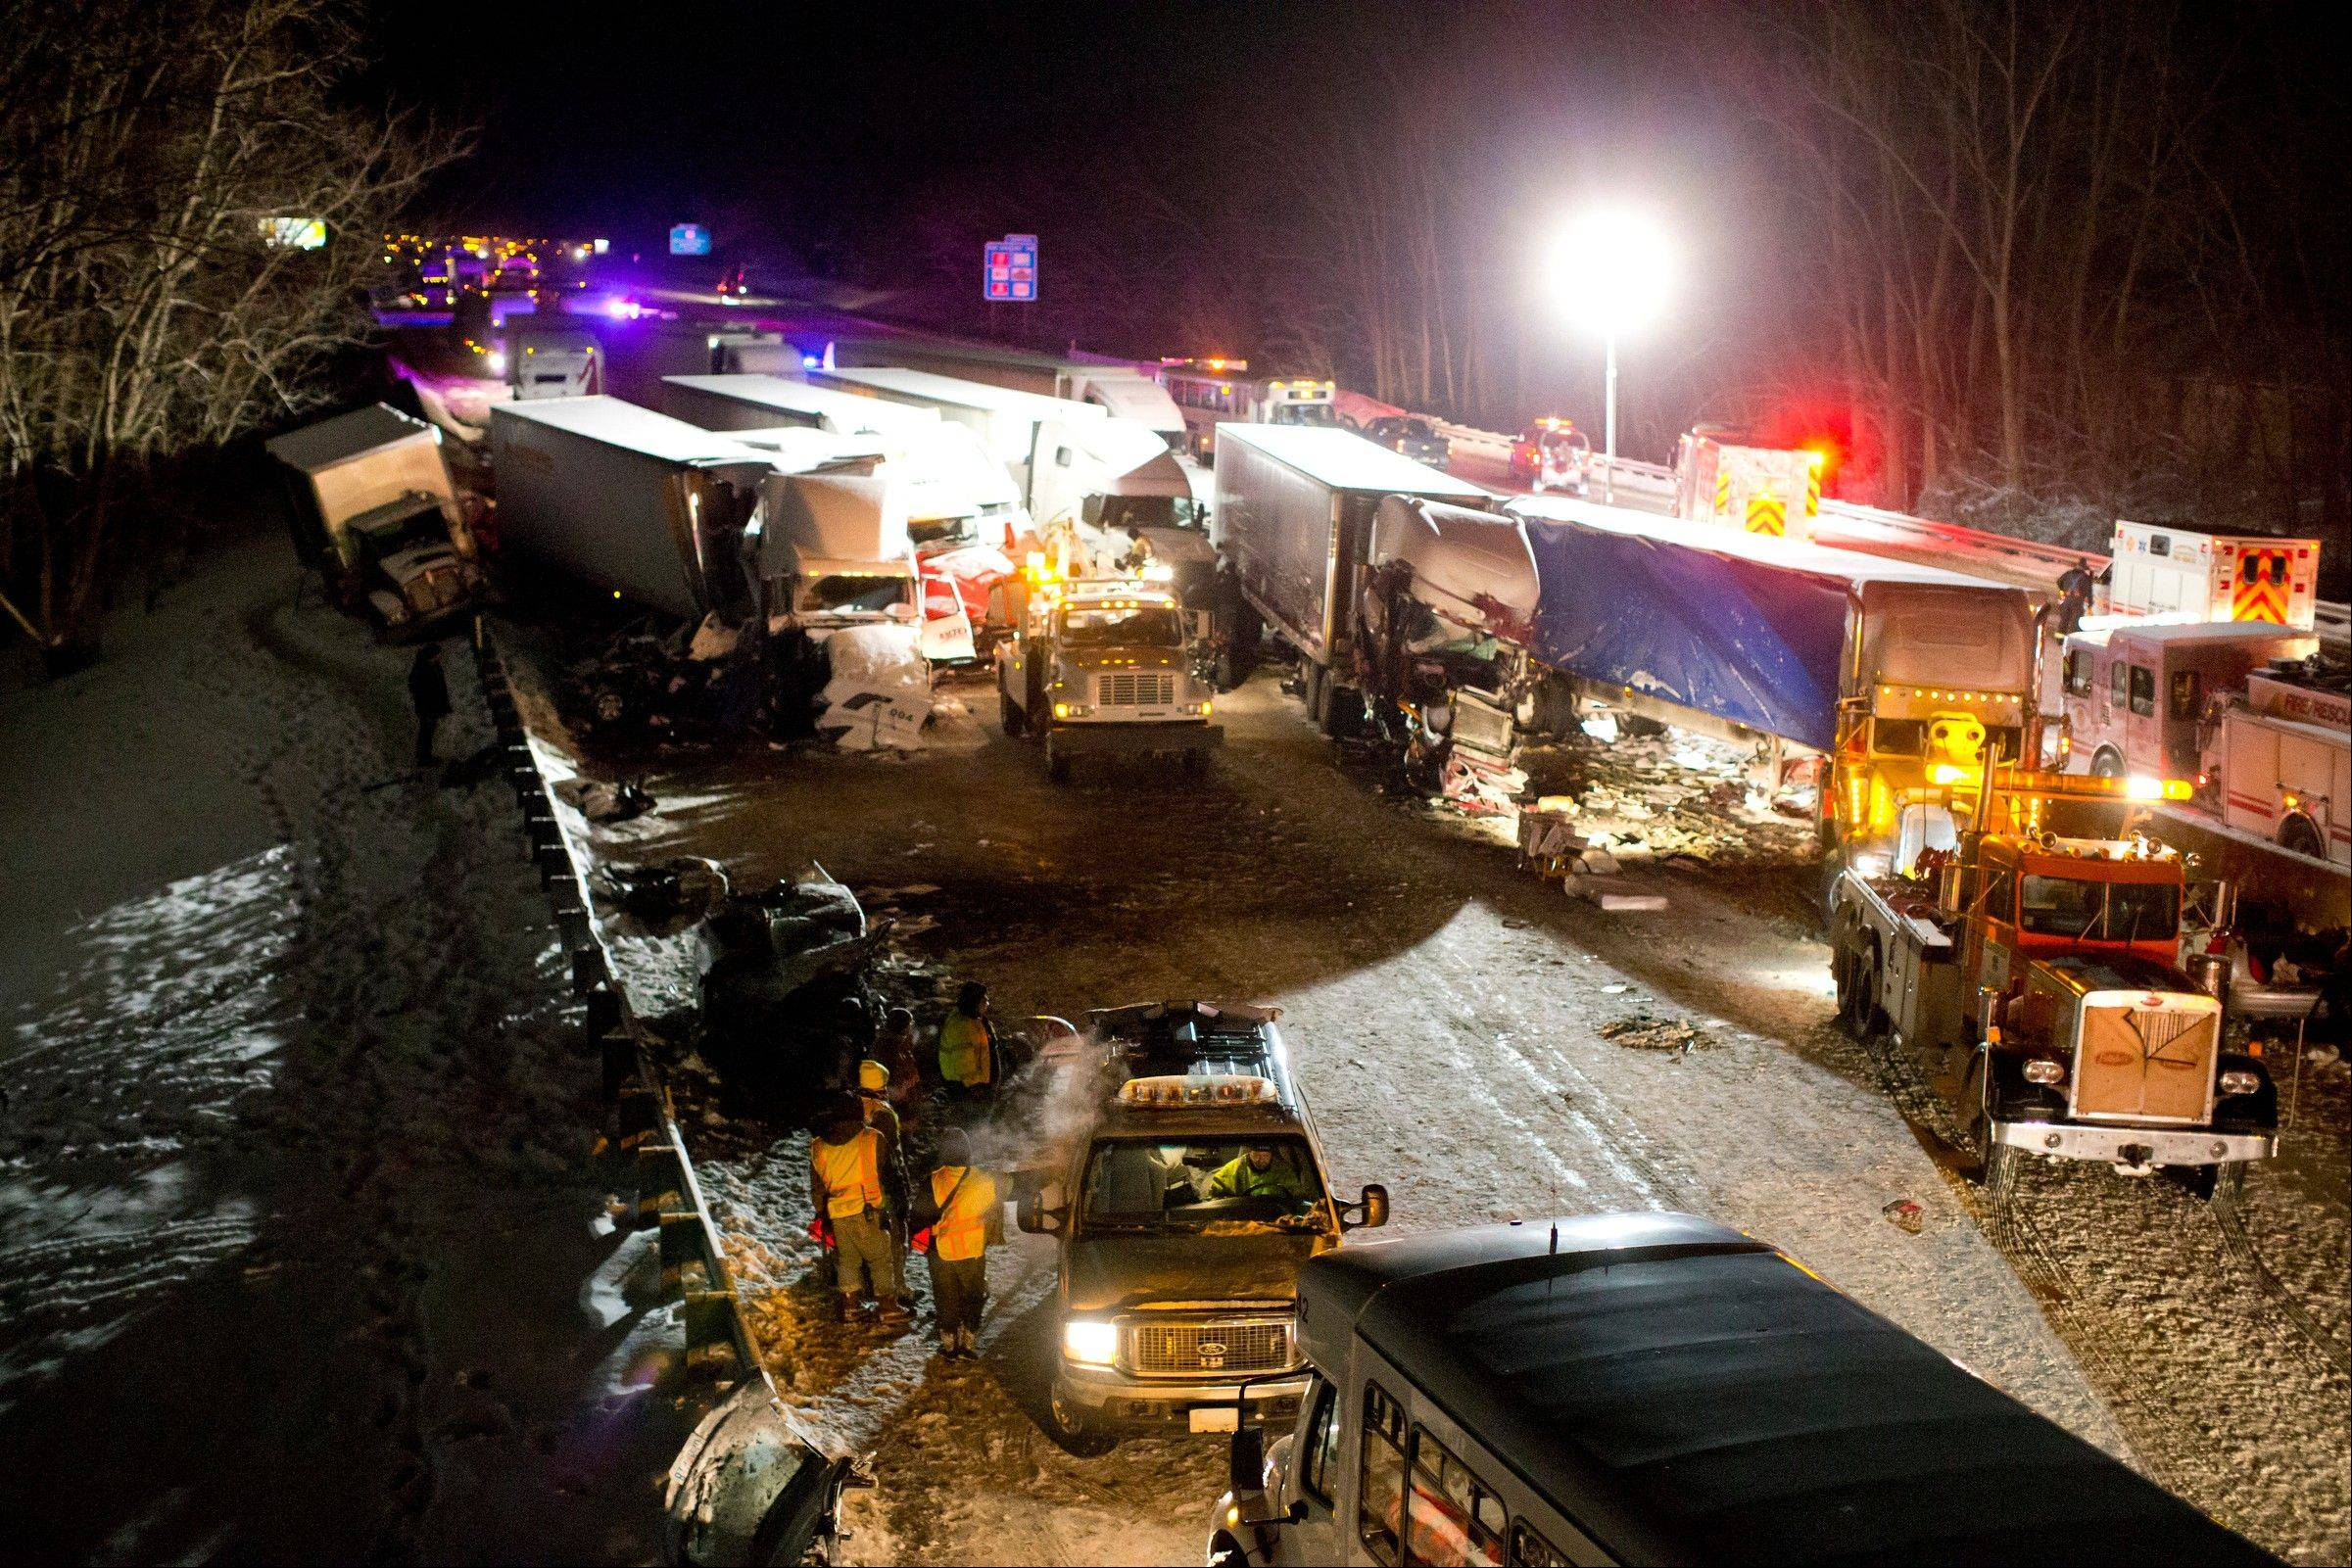 Emergency crews work at the scene of a massive pileup involving more than 40 vehicles, many of them semitrailers, along Interstate 94 Thursday afternoon, Jan. 23, 2014 near Michigan City, Ind. At least three were killed and more than 20 people were injured.